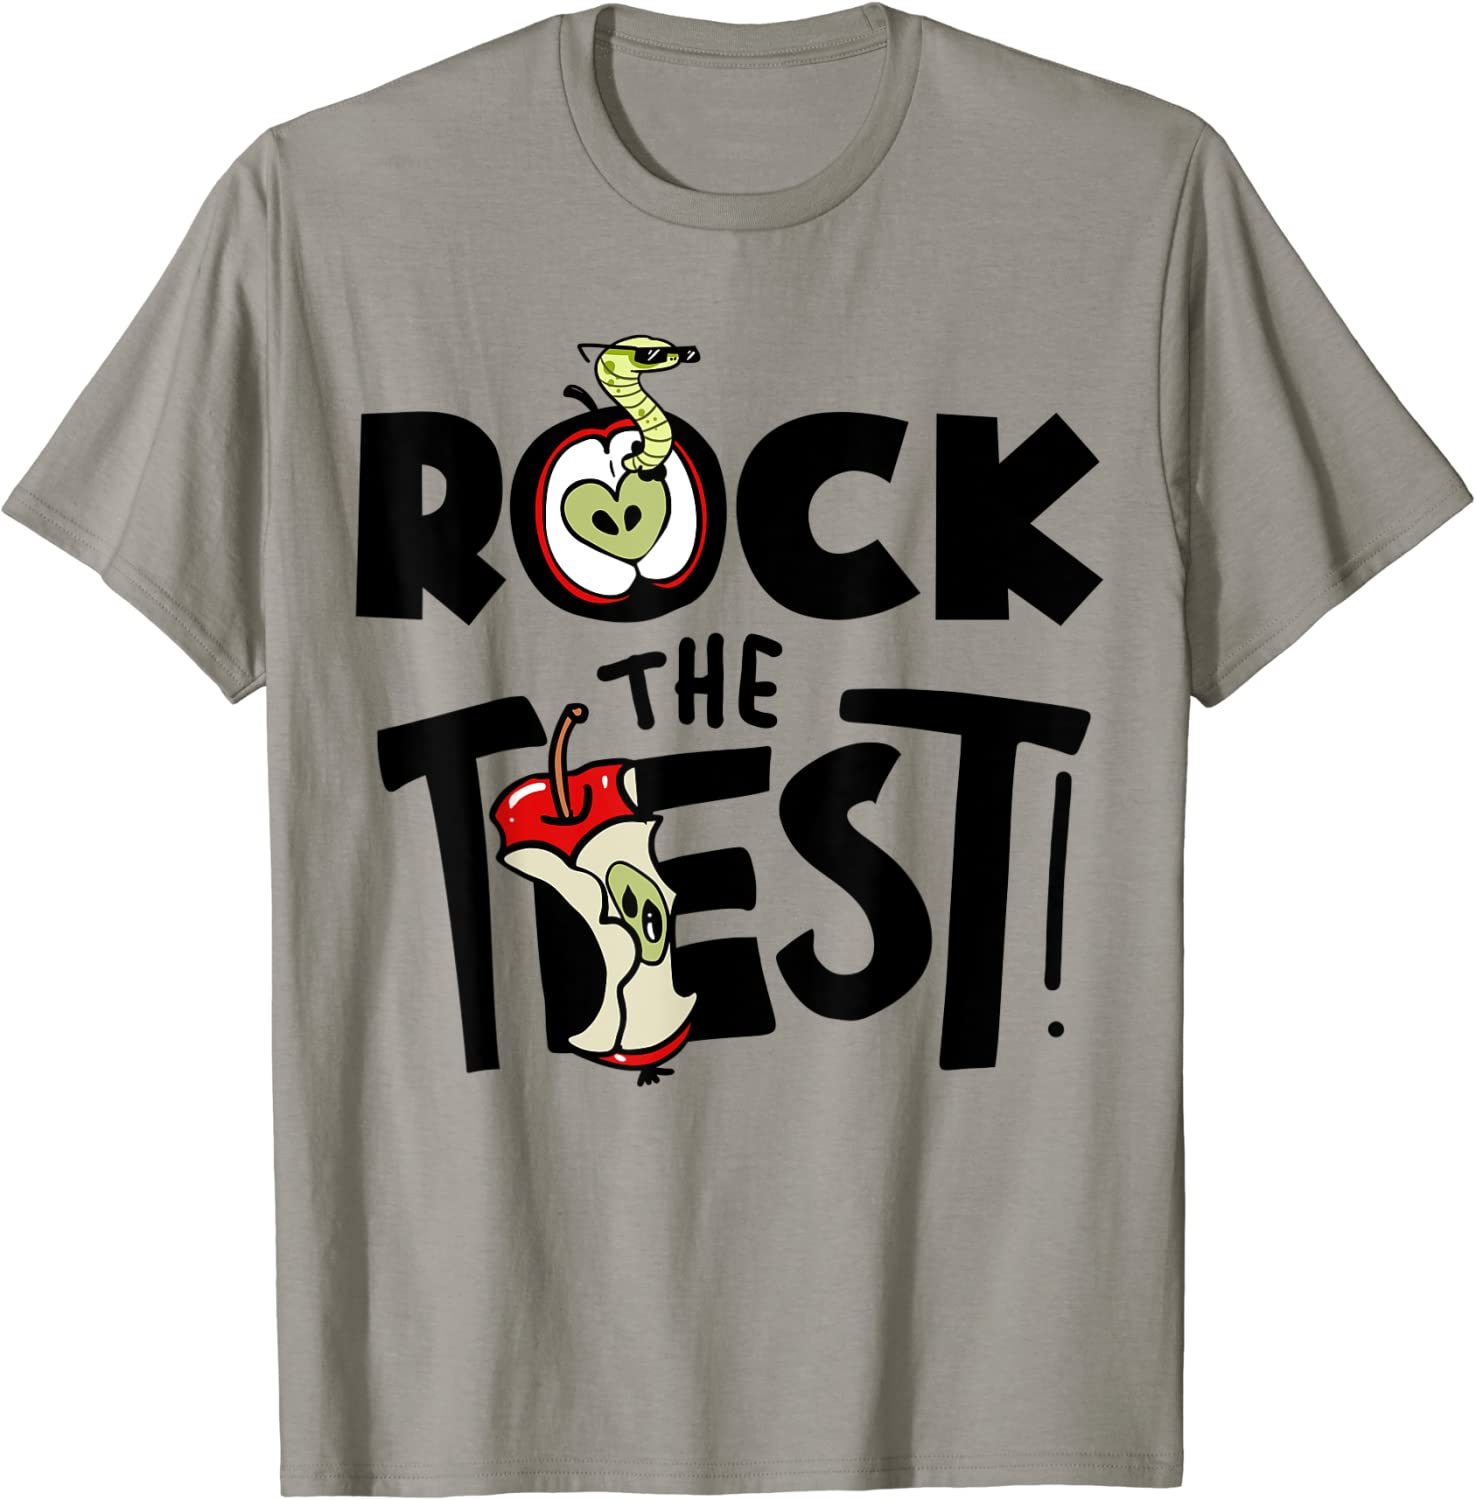 Test day tshirt for students do your best test tee shirt